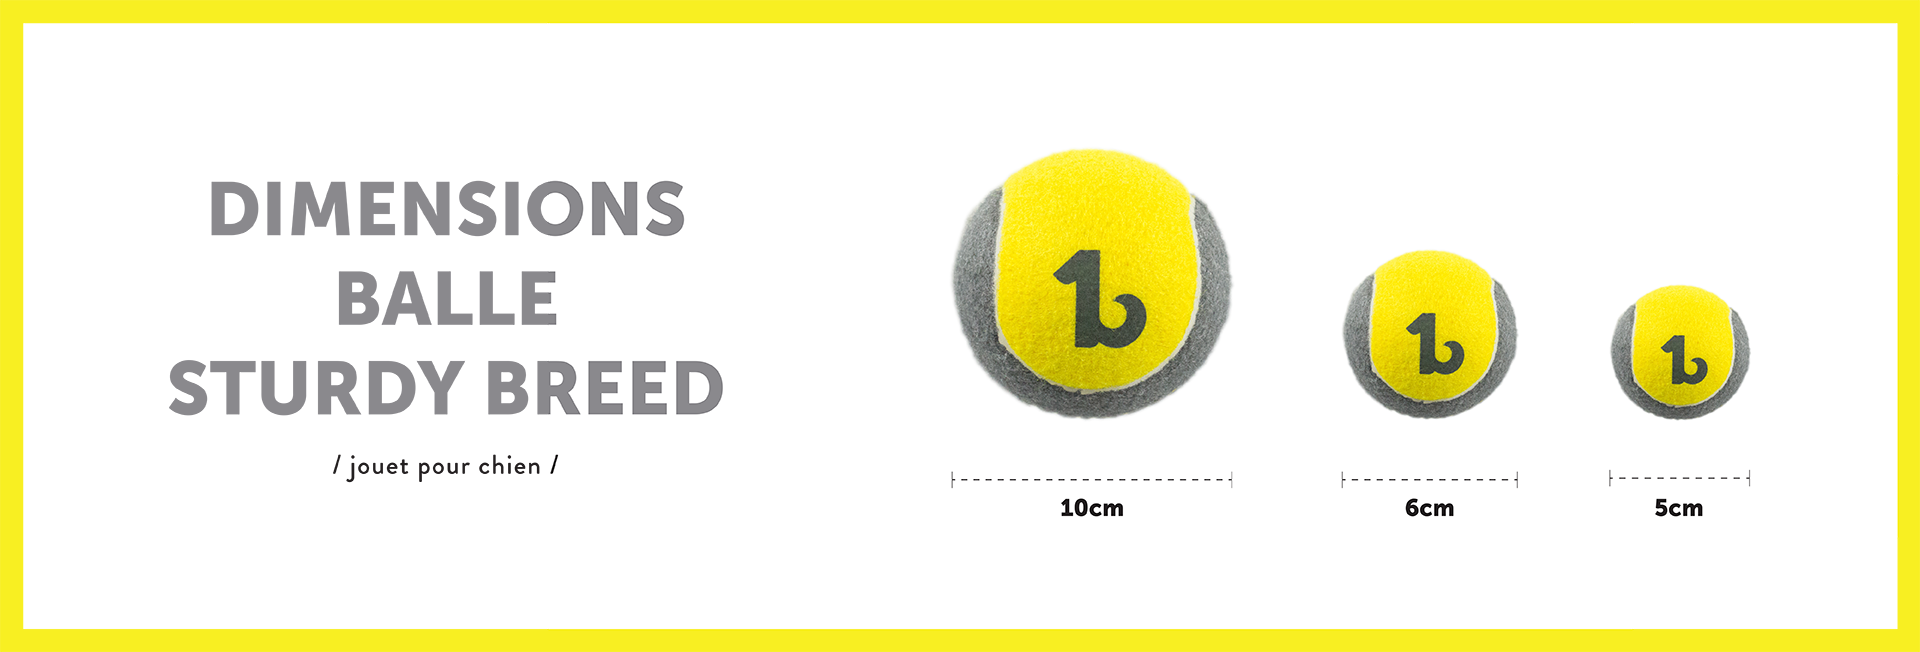 dimensions-sturdy-breed-ball-for-dogs-french